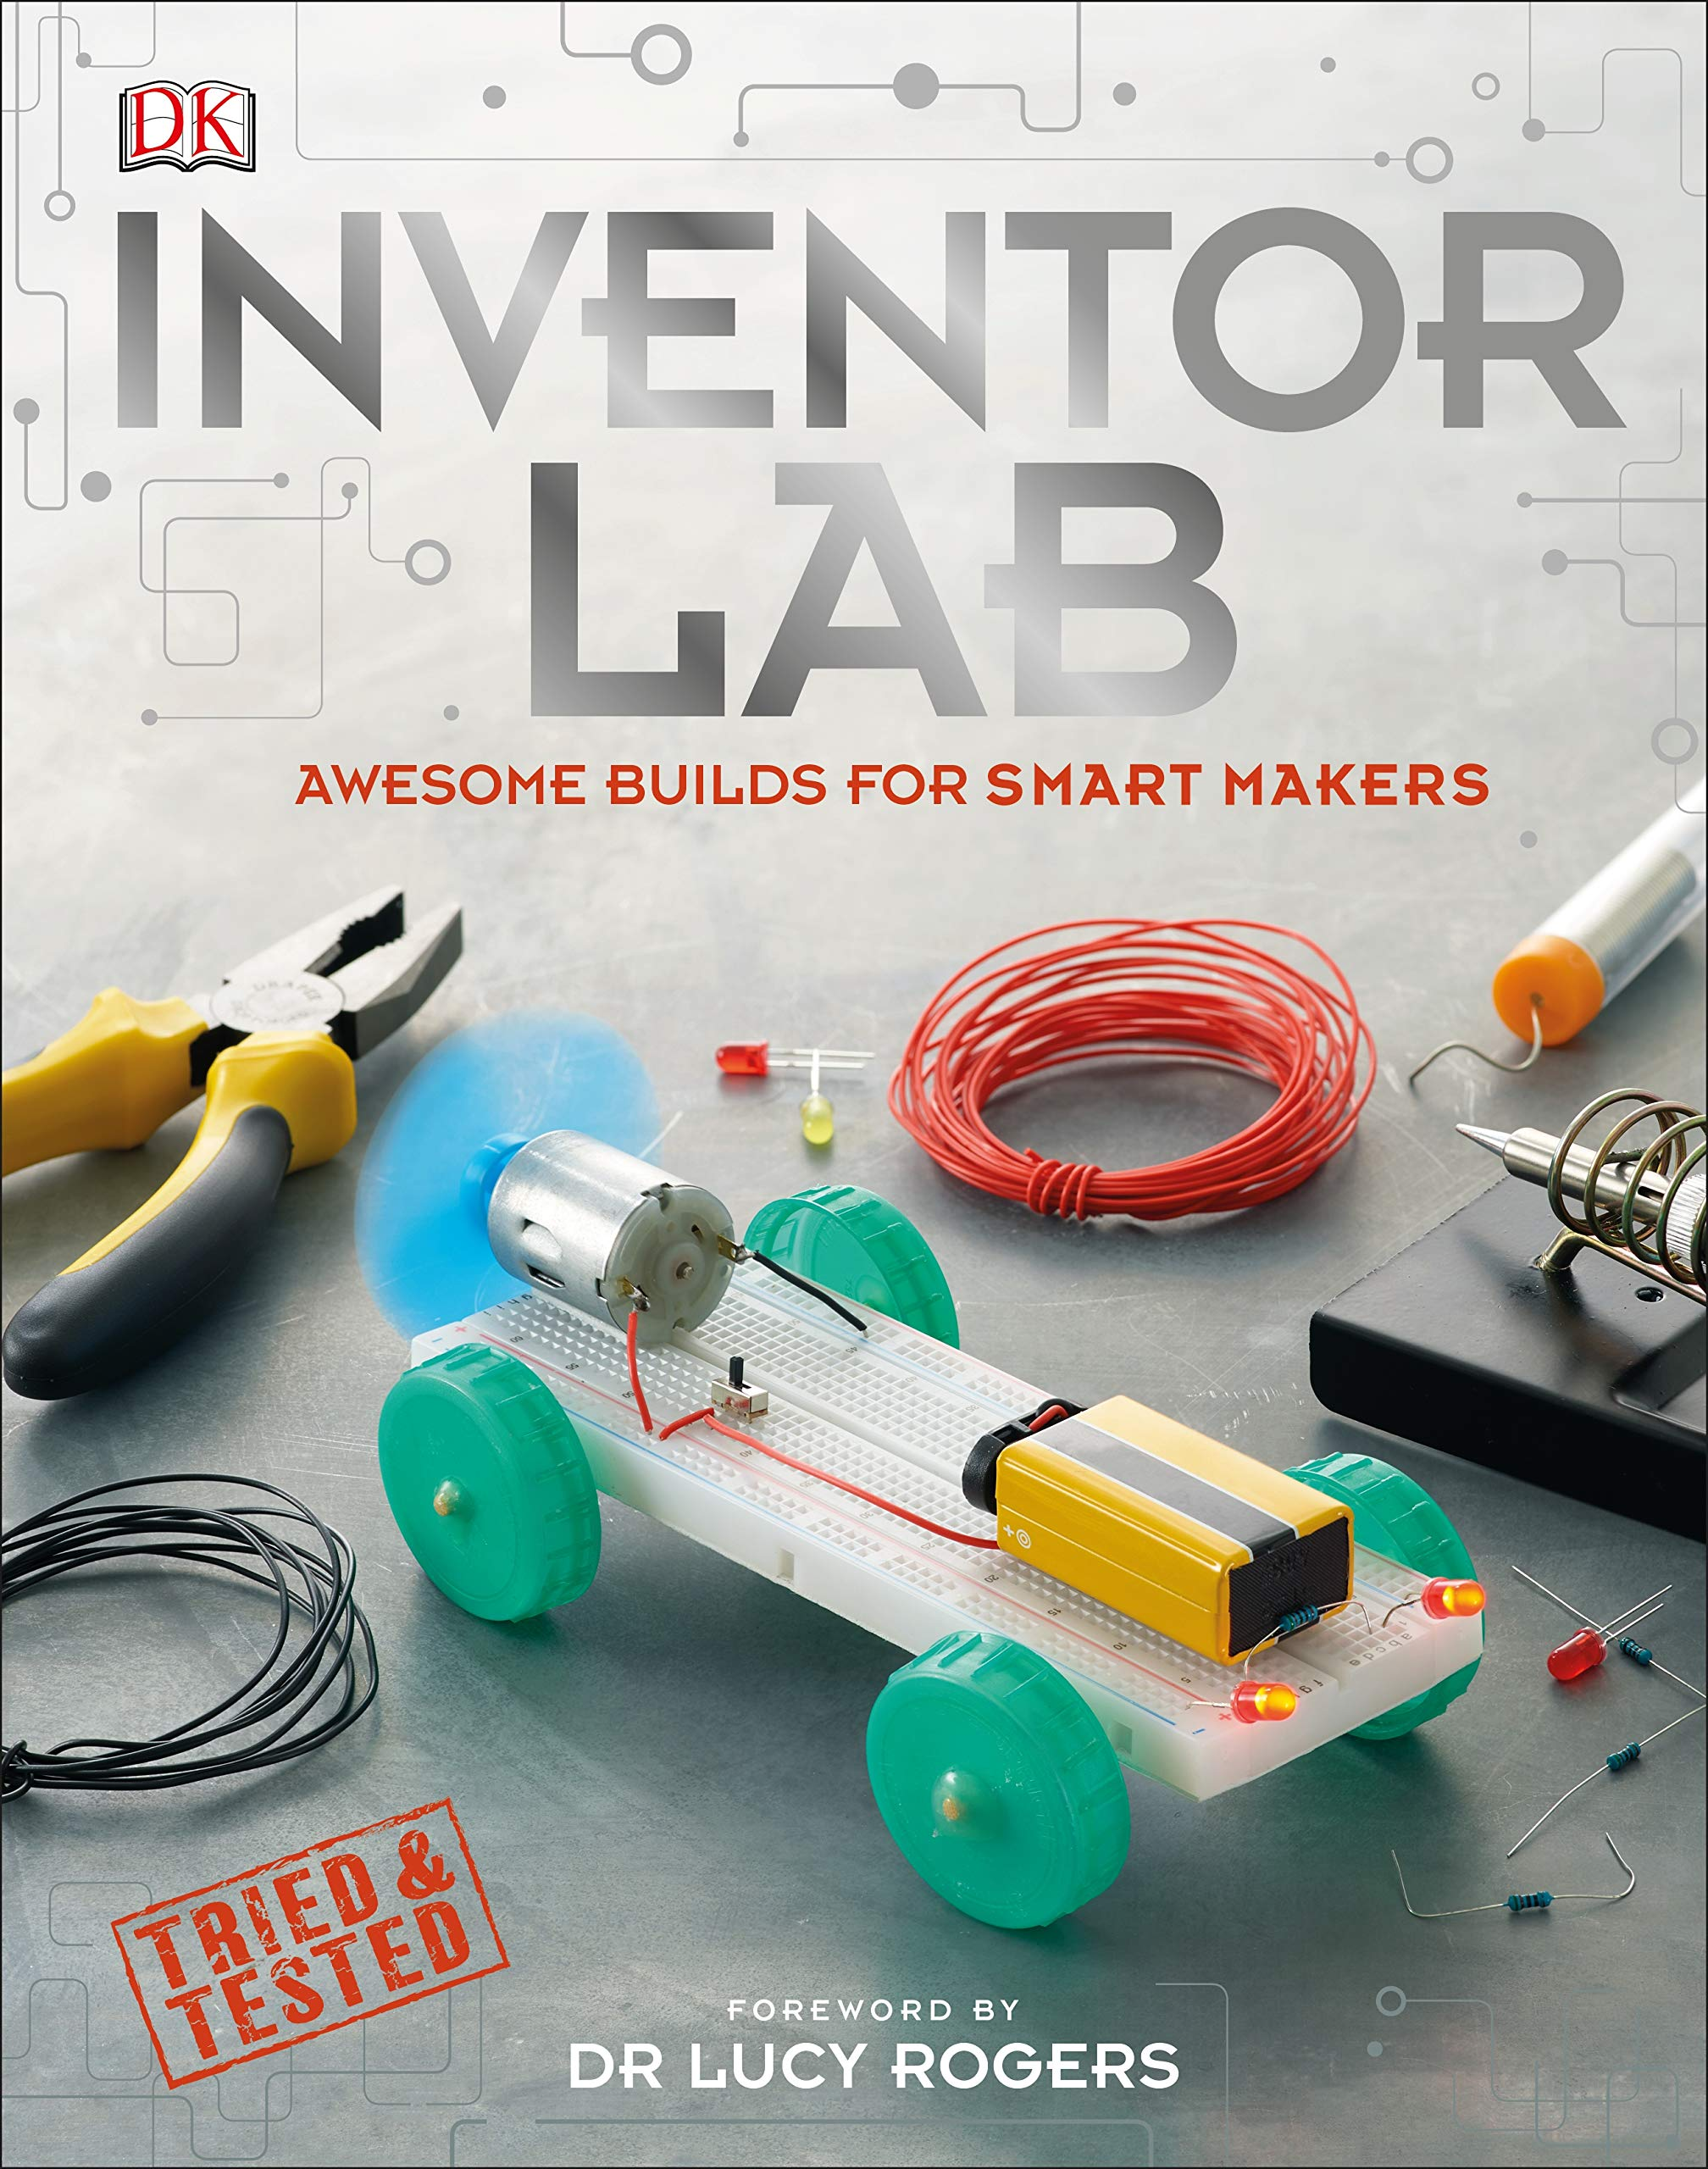 Inventor Lab: Awesome Builds for Smart Makers: Amazon.es: DK, Rogers, Dr Lucy: Libros en idiomas extranjeros